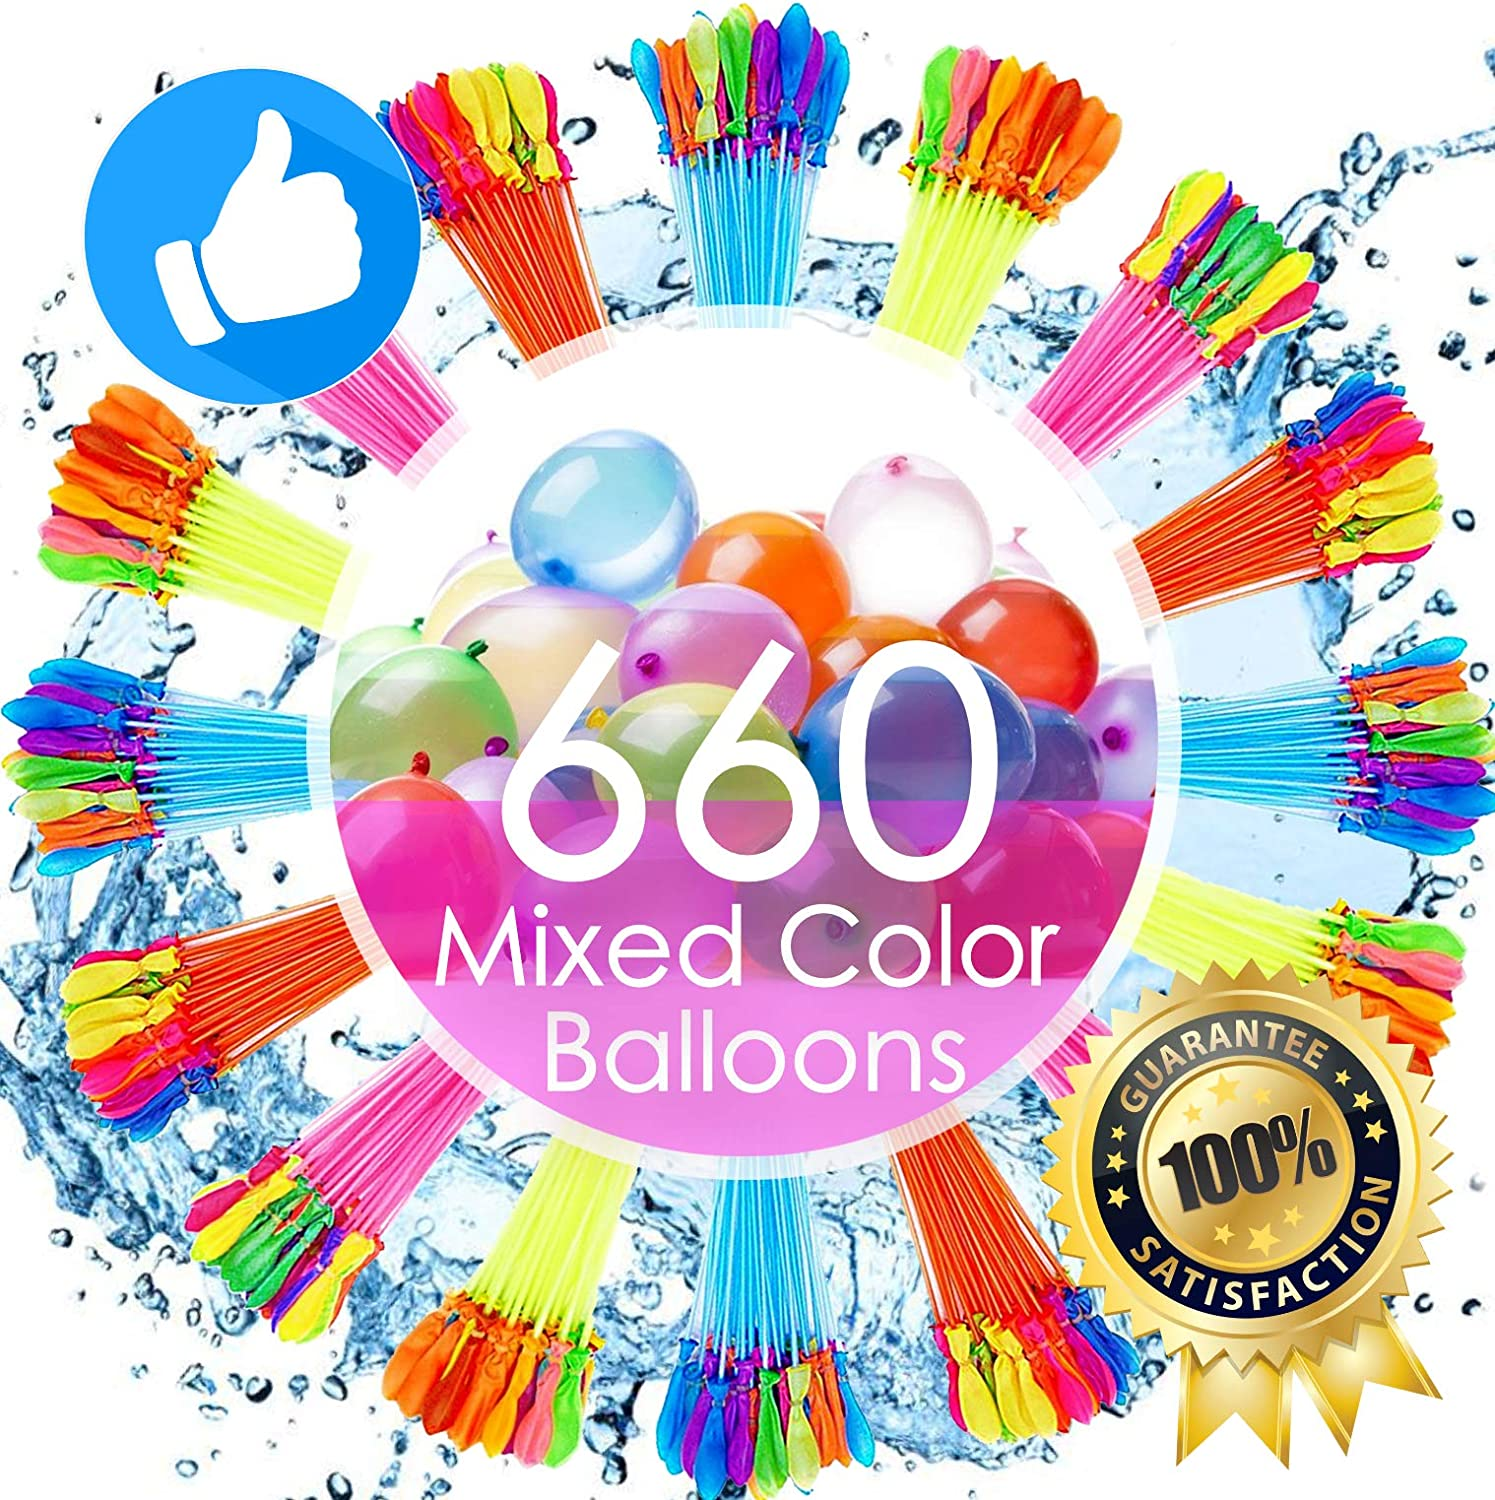 Water Balloons for Kids Girls Boys Balloons Set Party Games Quick Fill 660 Balloons 18 Bunches for Swimming Pool Outdoor Summer Fun MK1